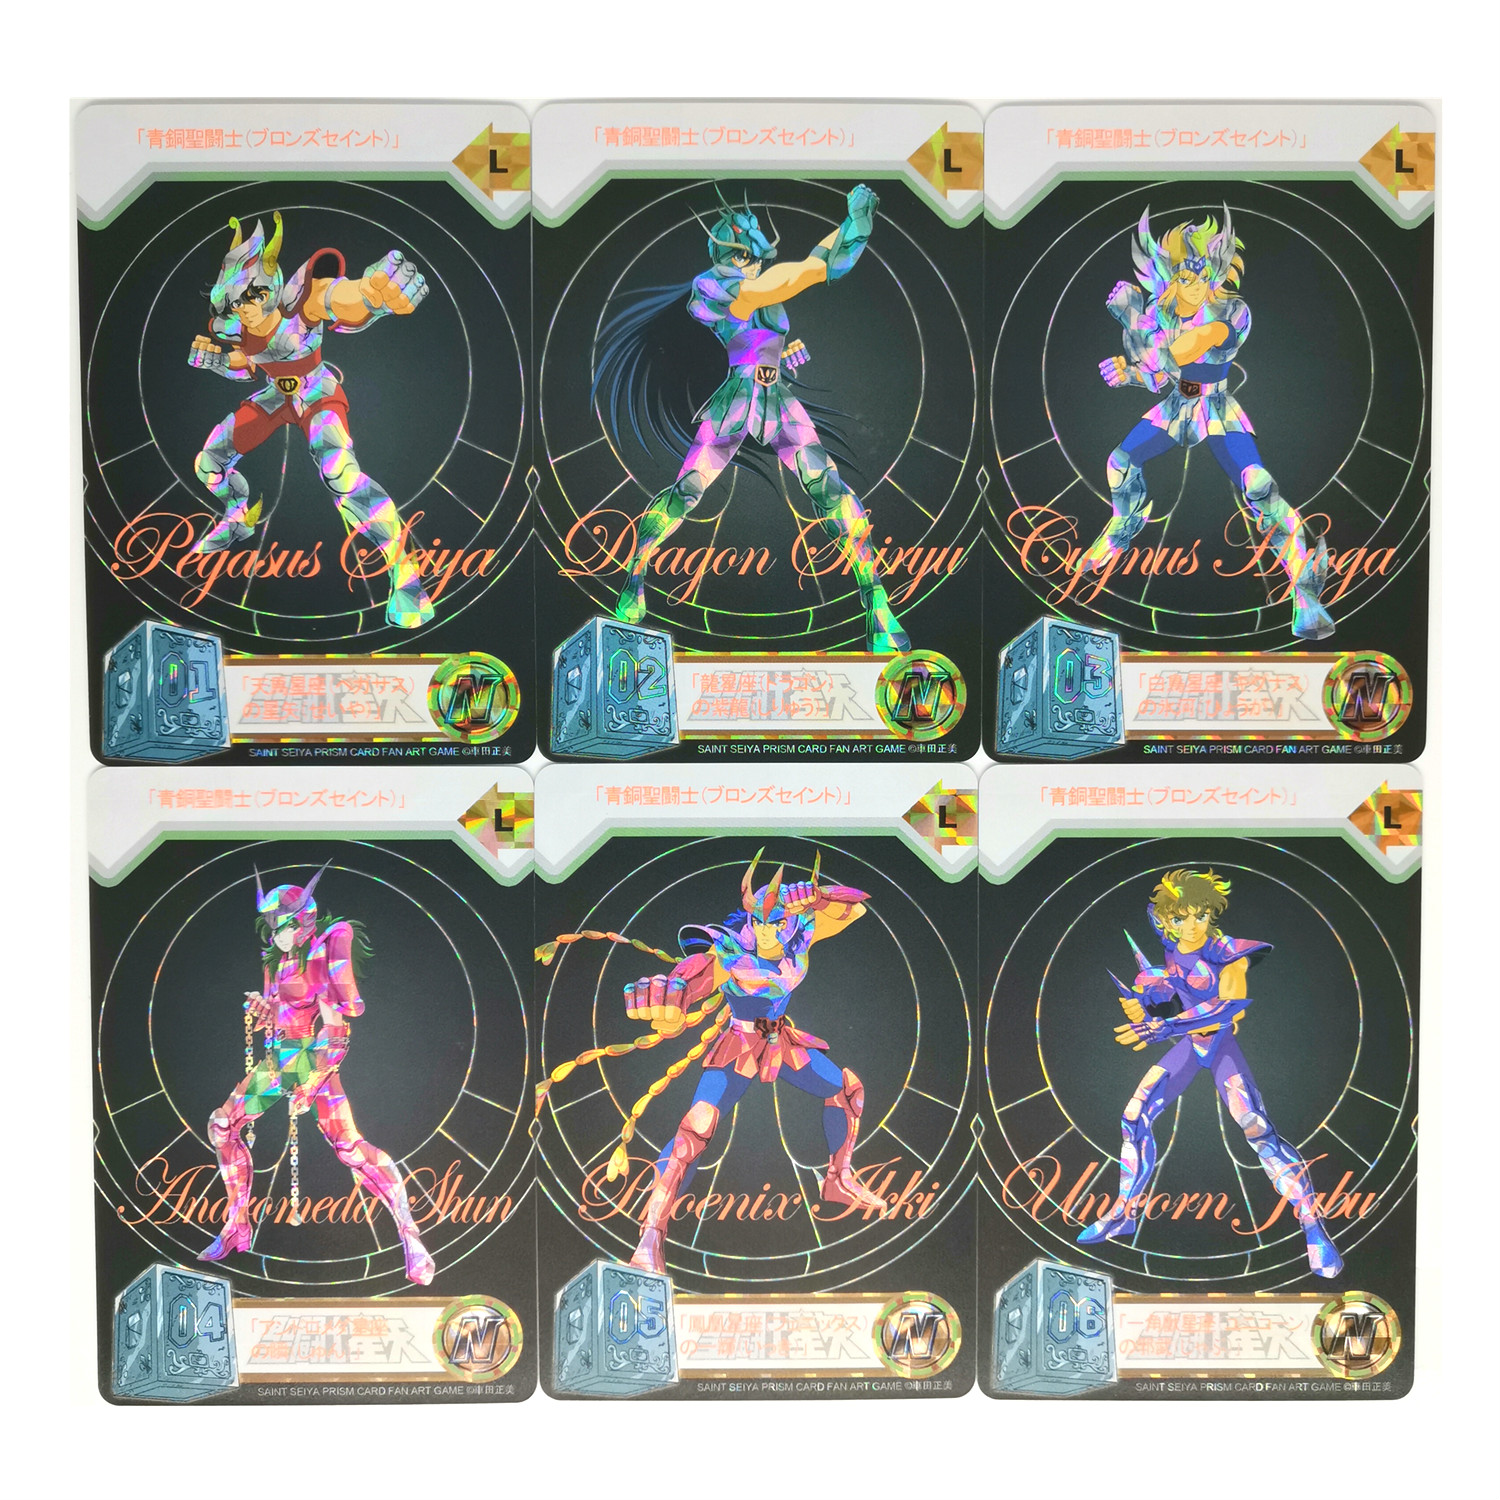 42pcs/set Saint Seiya Bronze Silver Gold Zodiac Fluorescent Ruby Toys Hobbies Hobby Collectibles Game Collection Anime Cards